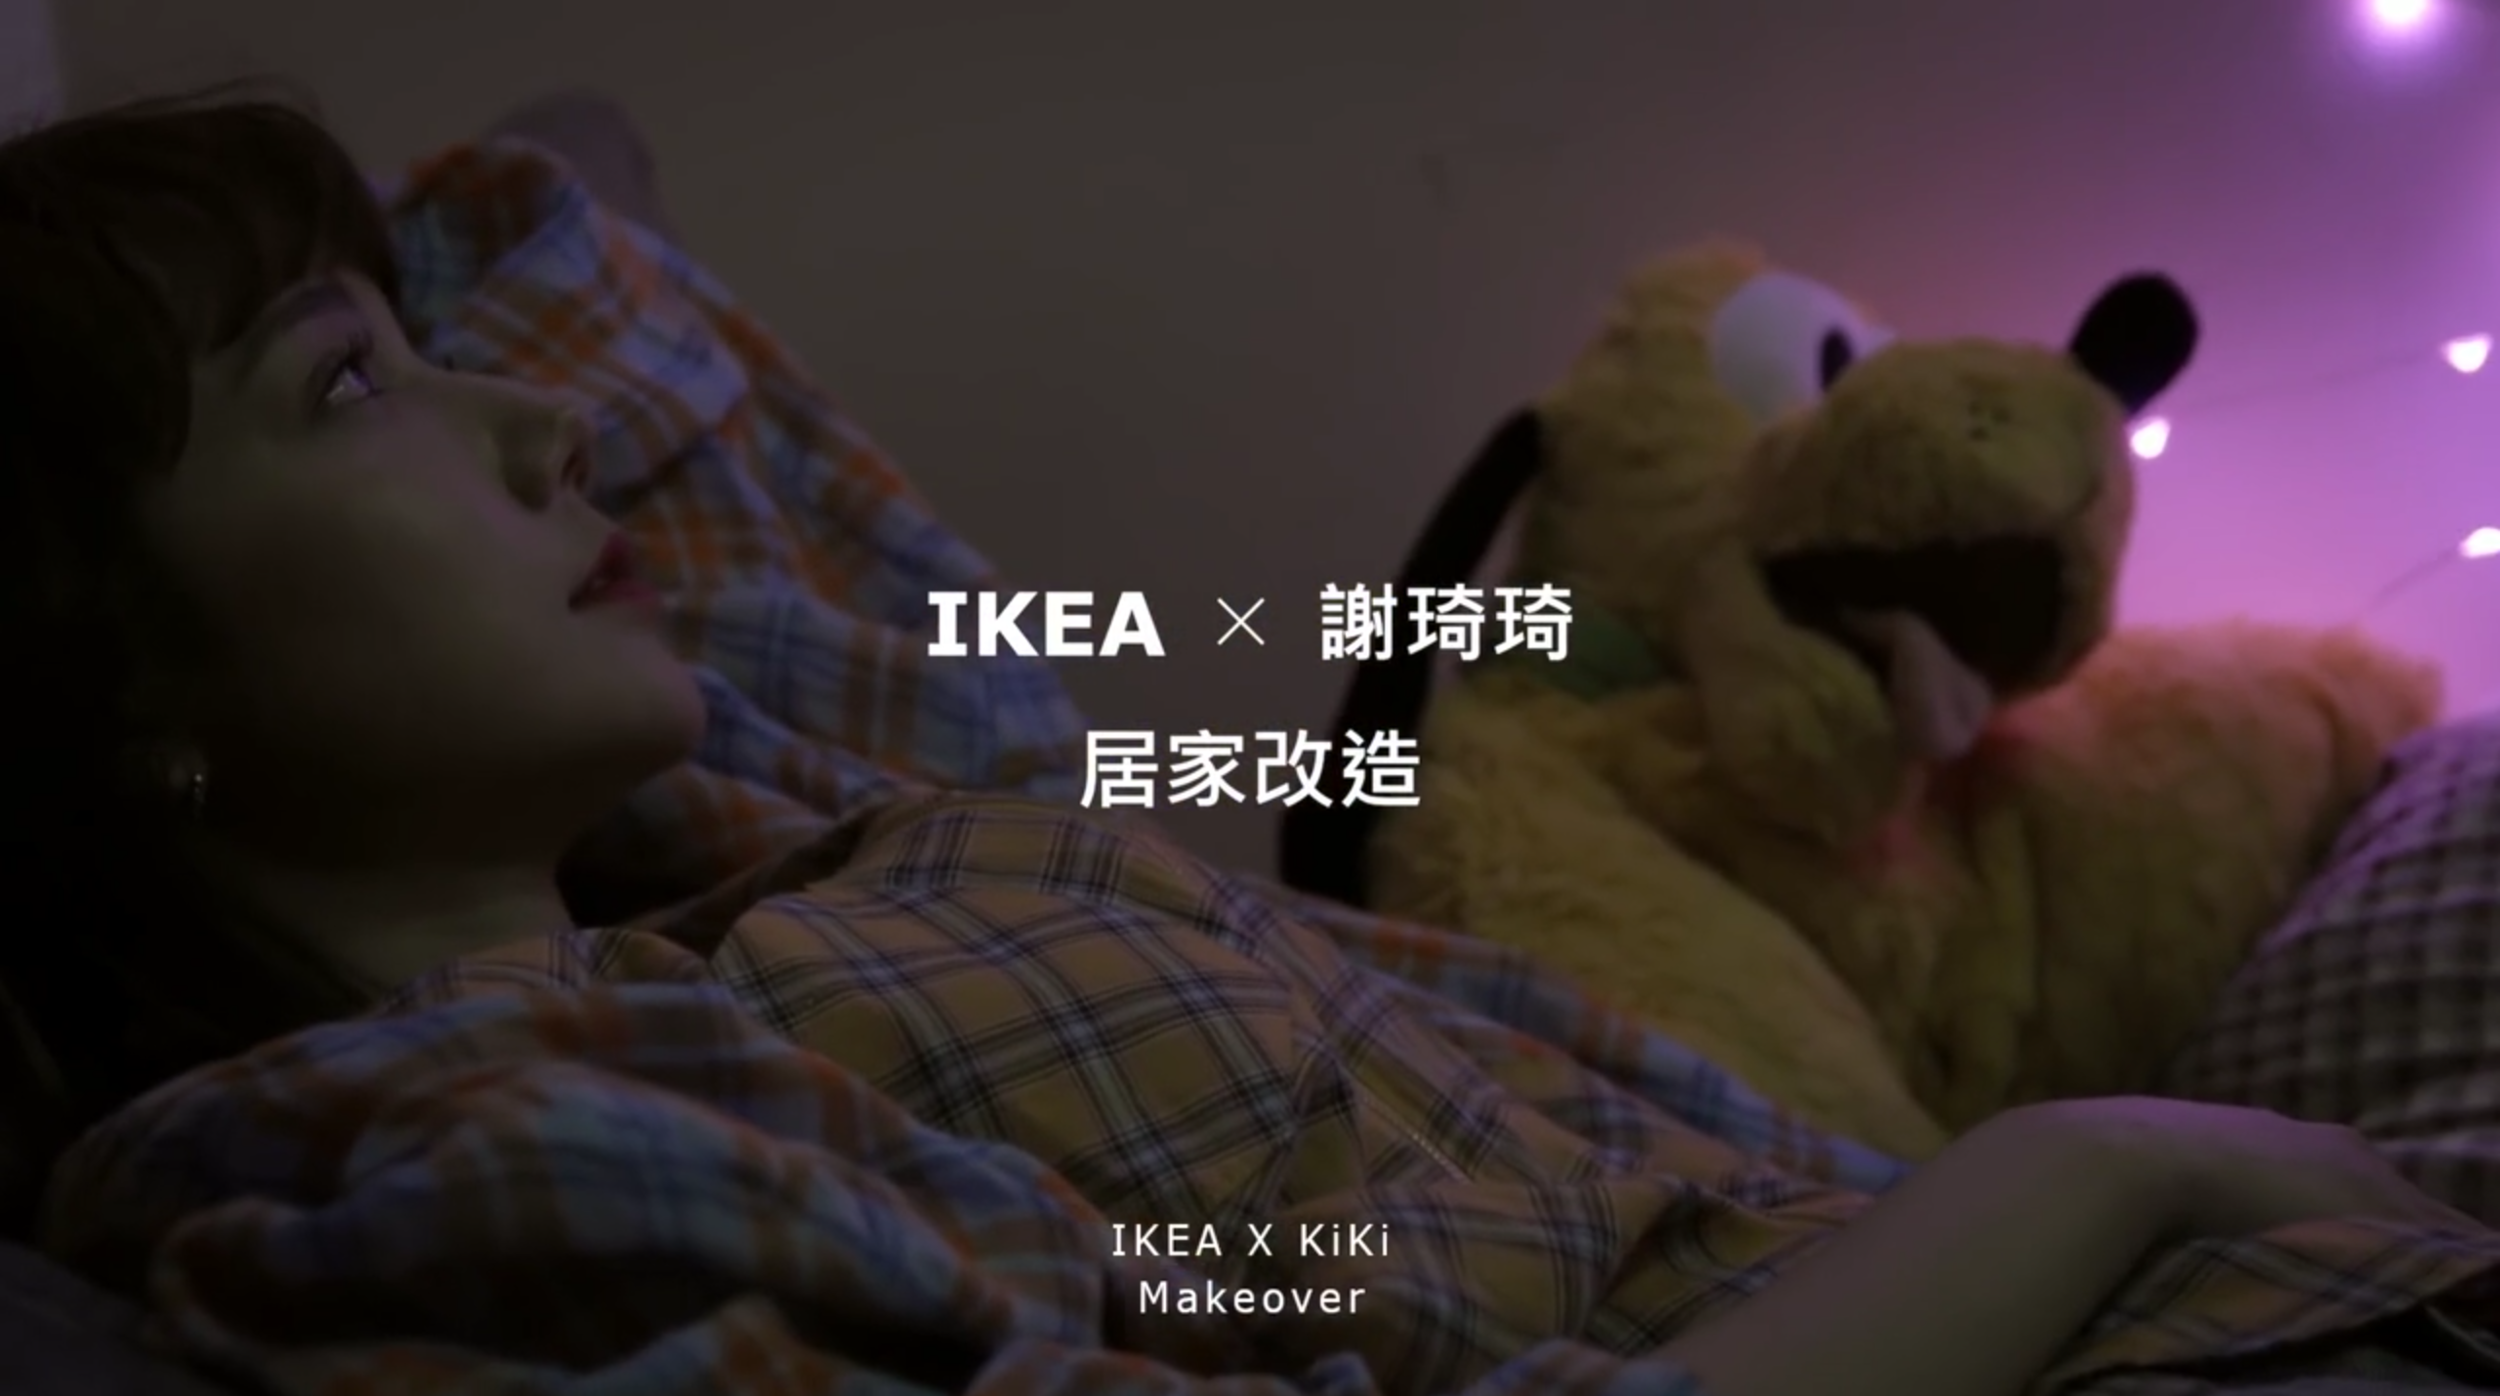 IKEA x 谢琦琦 居家改造 (cover).png